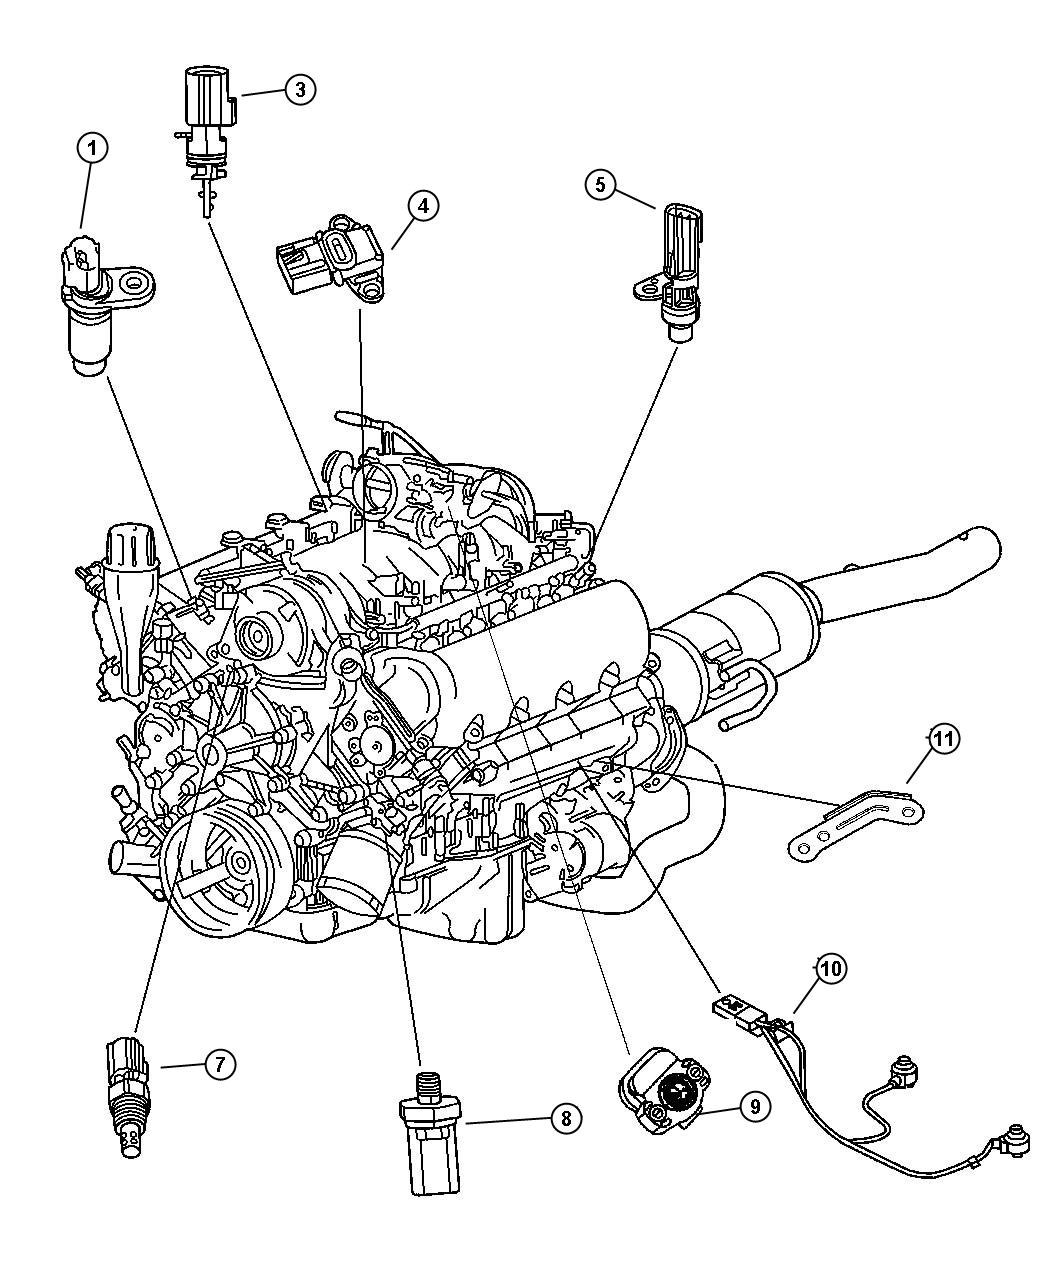 Dodge Dakota Sensors Engine 3 7l Ek0